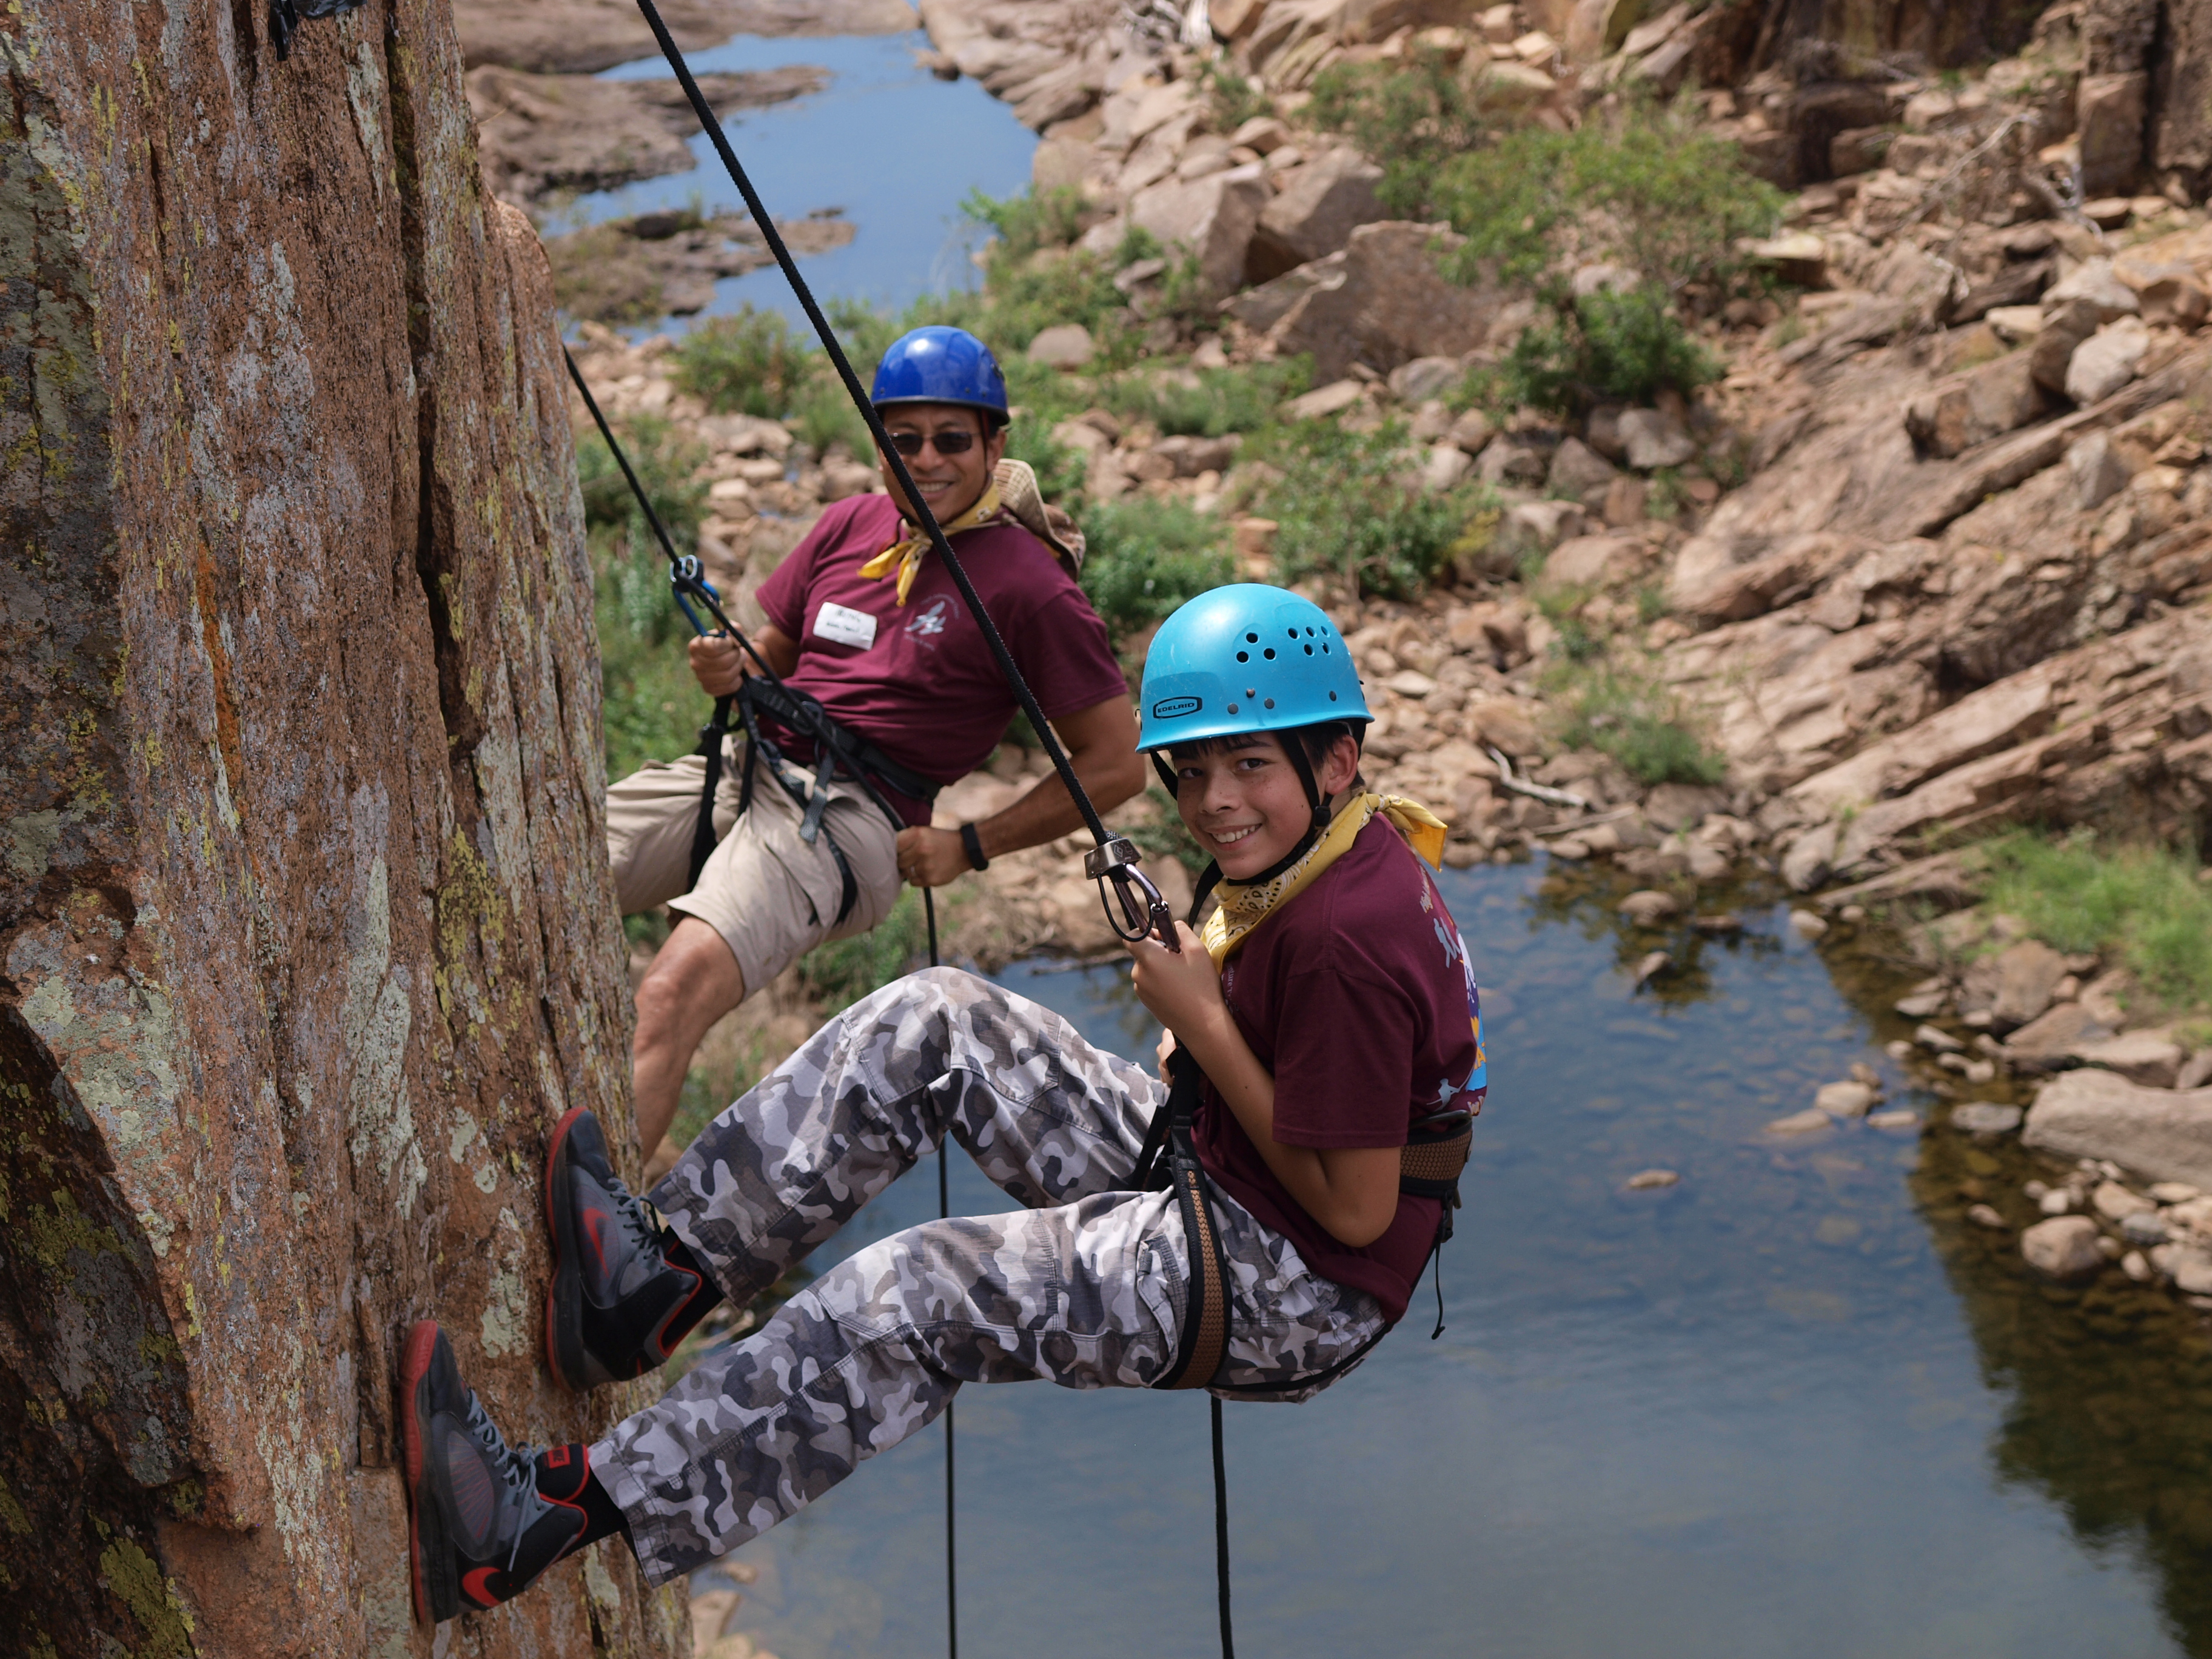 D&S – 7th Rock Climbing & Rappelling